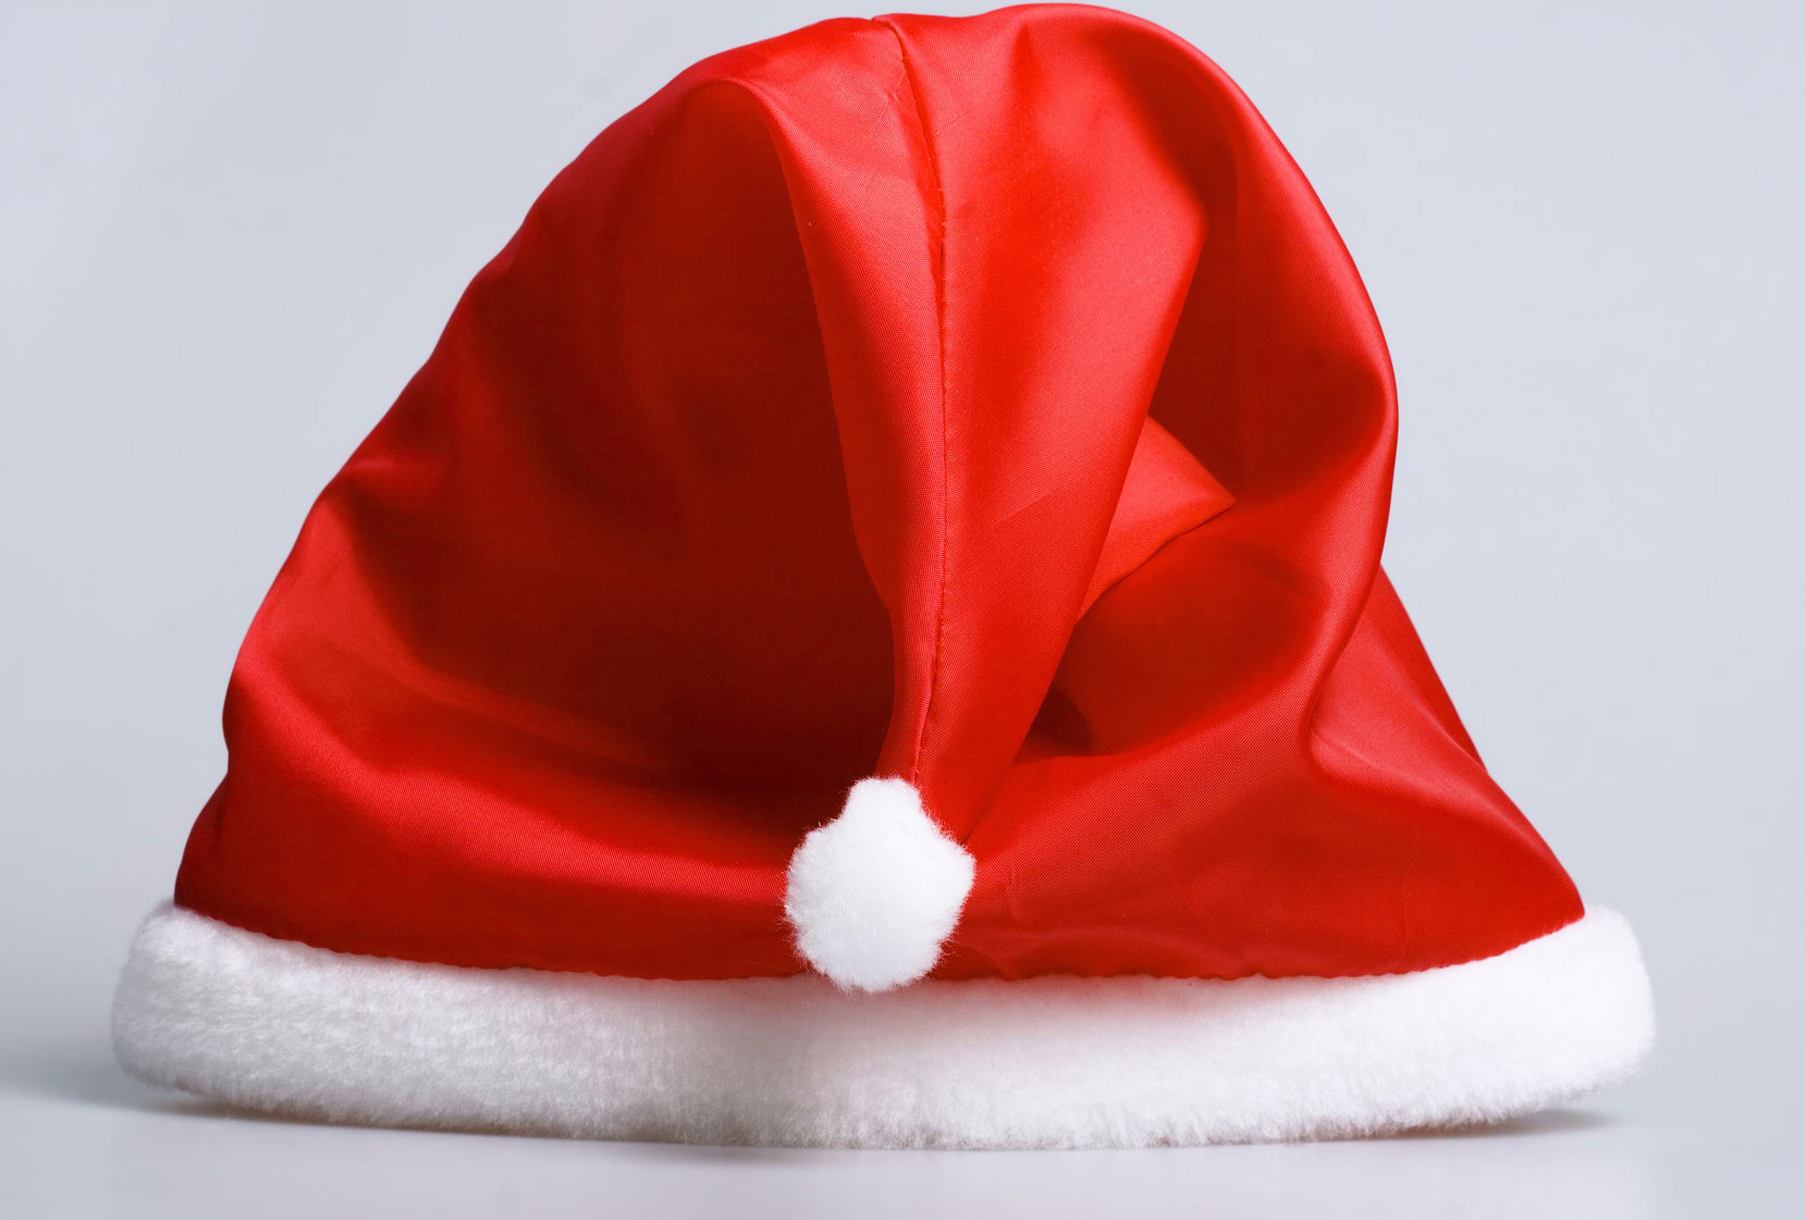 Red hat, Accessory, Single, Object, Party, HQ Photo